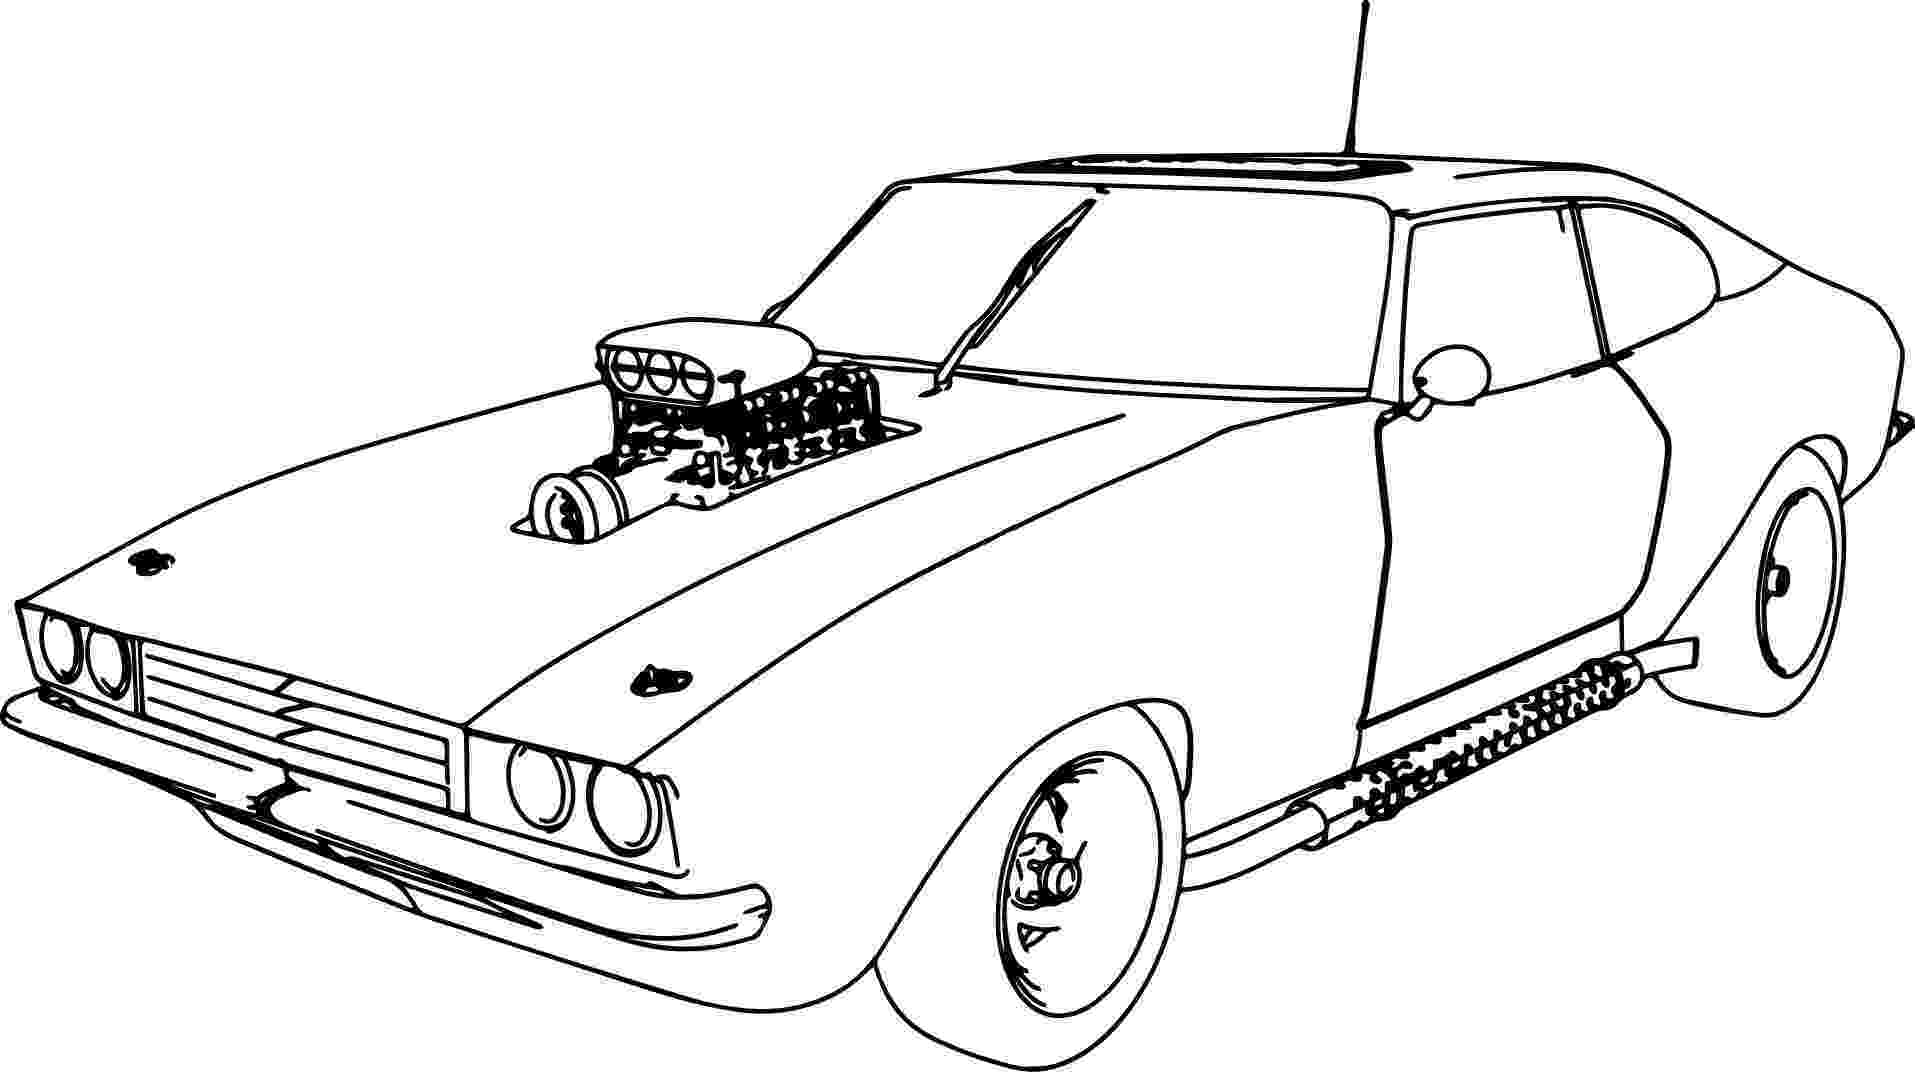 printable coloring pages sports cars coloring pages sports cars to print free coloring sheets sports pages printable coloring cars